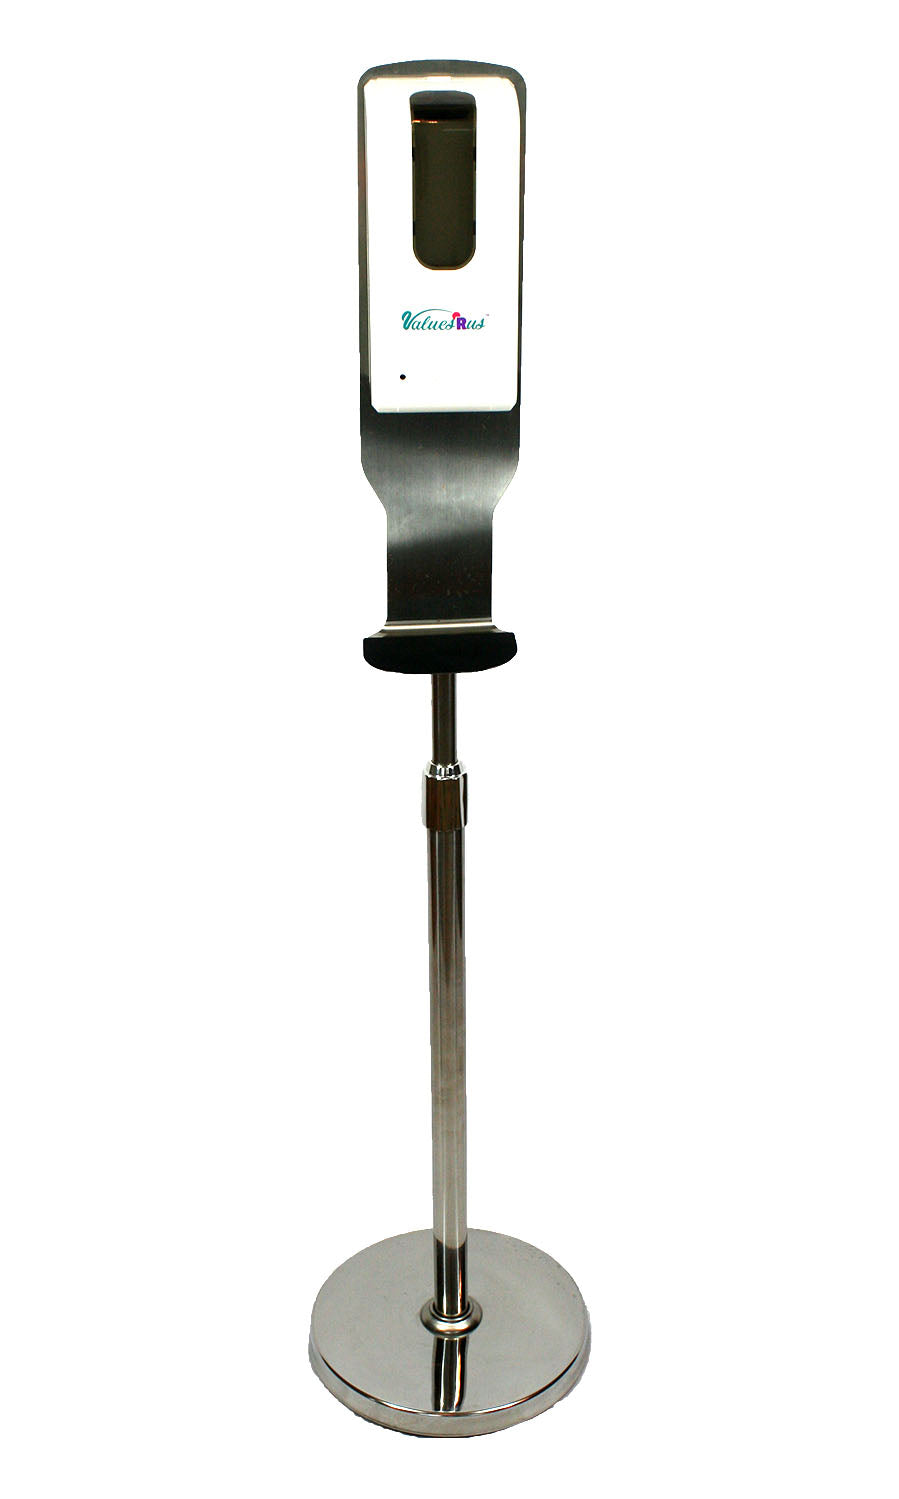 ValuesRus Stainless Steel Floor Stand for Non Contact Hand Sanitizing Dispensers